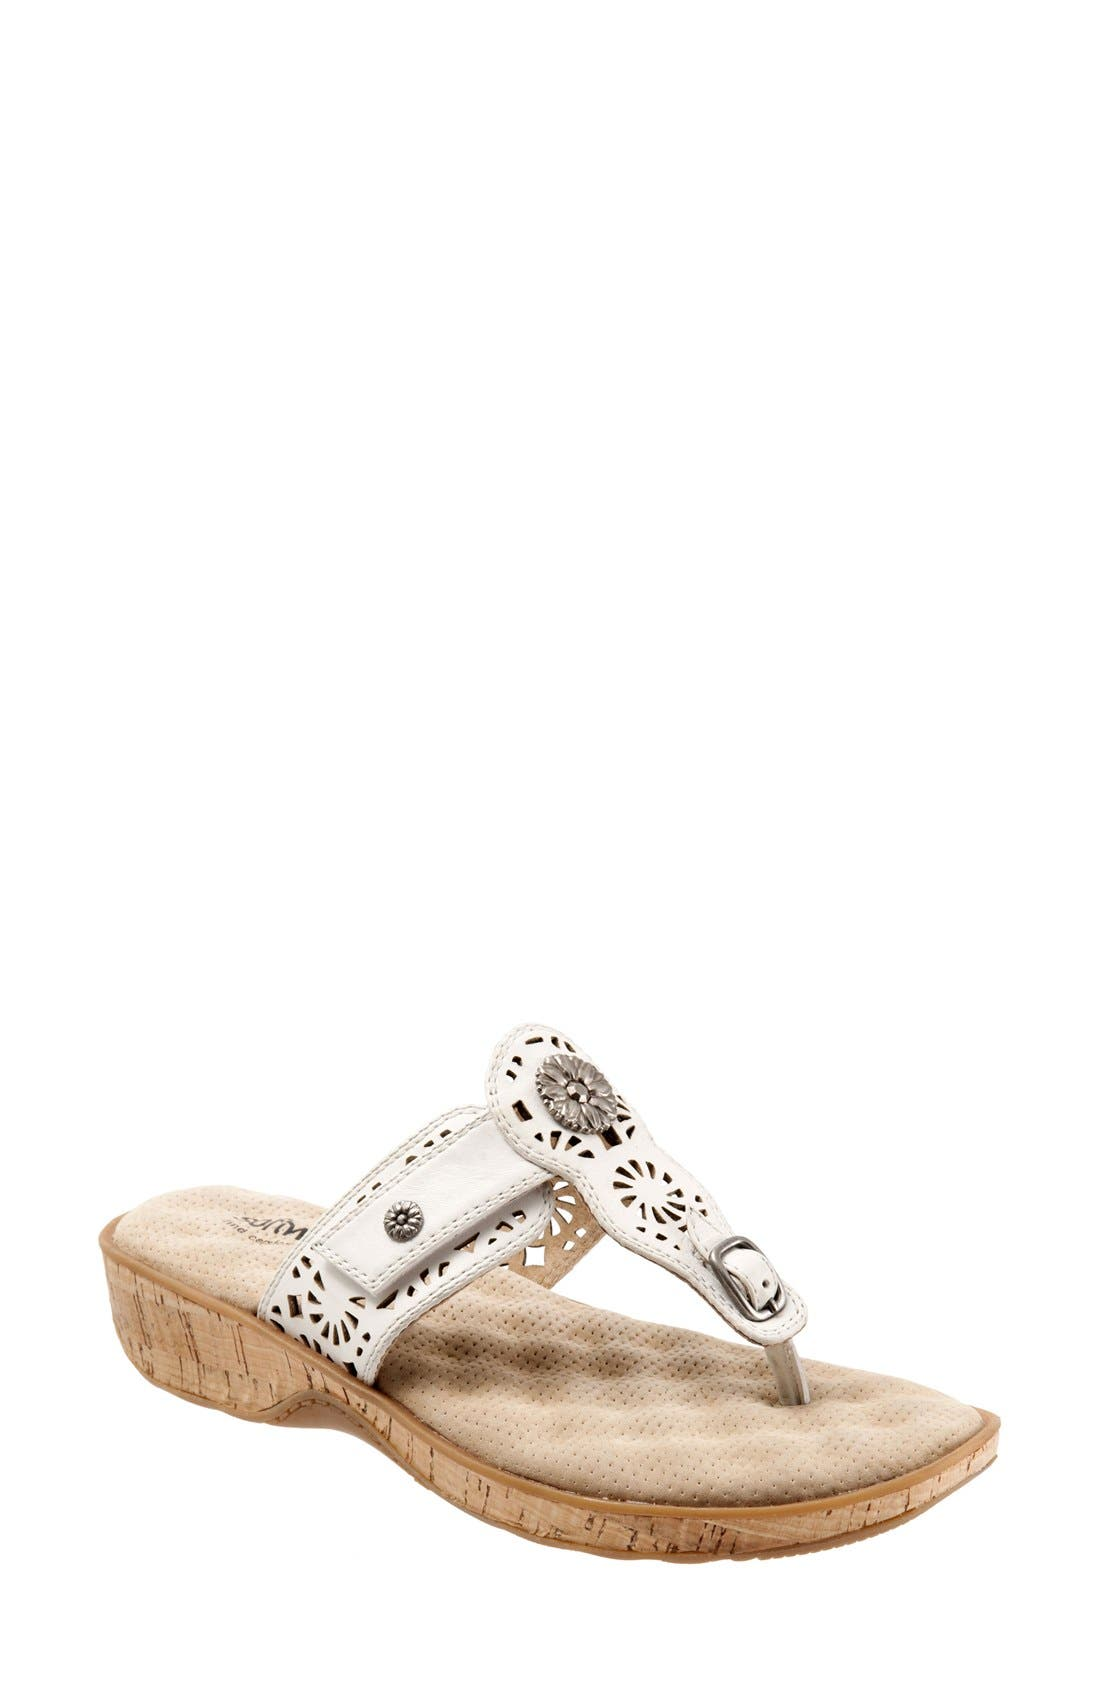 'Beaumont' Sandal,                         Main,                         color, Off White Leather